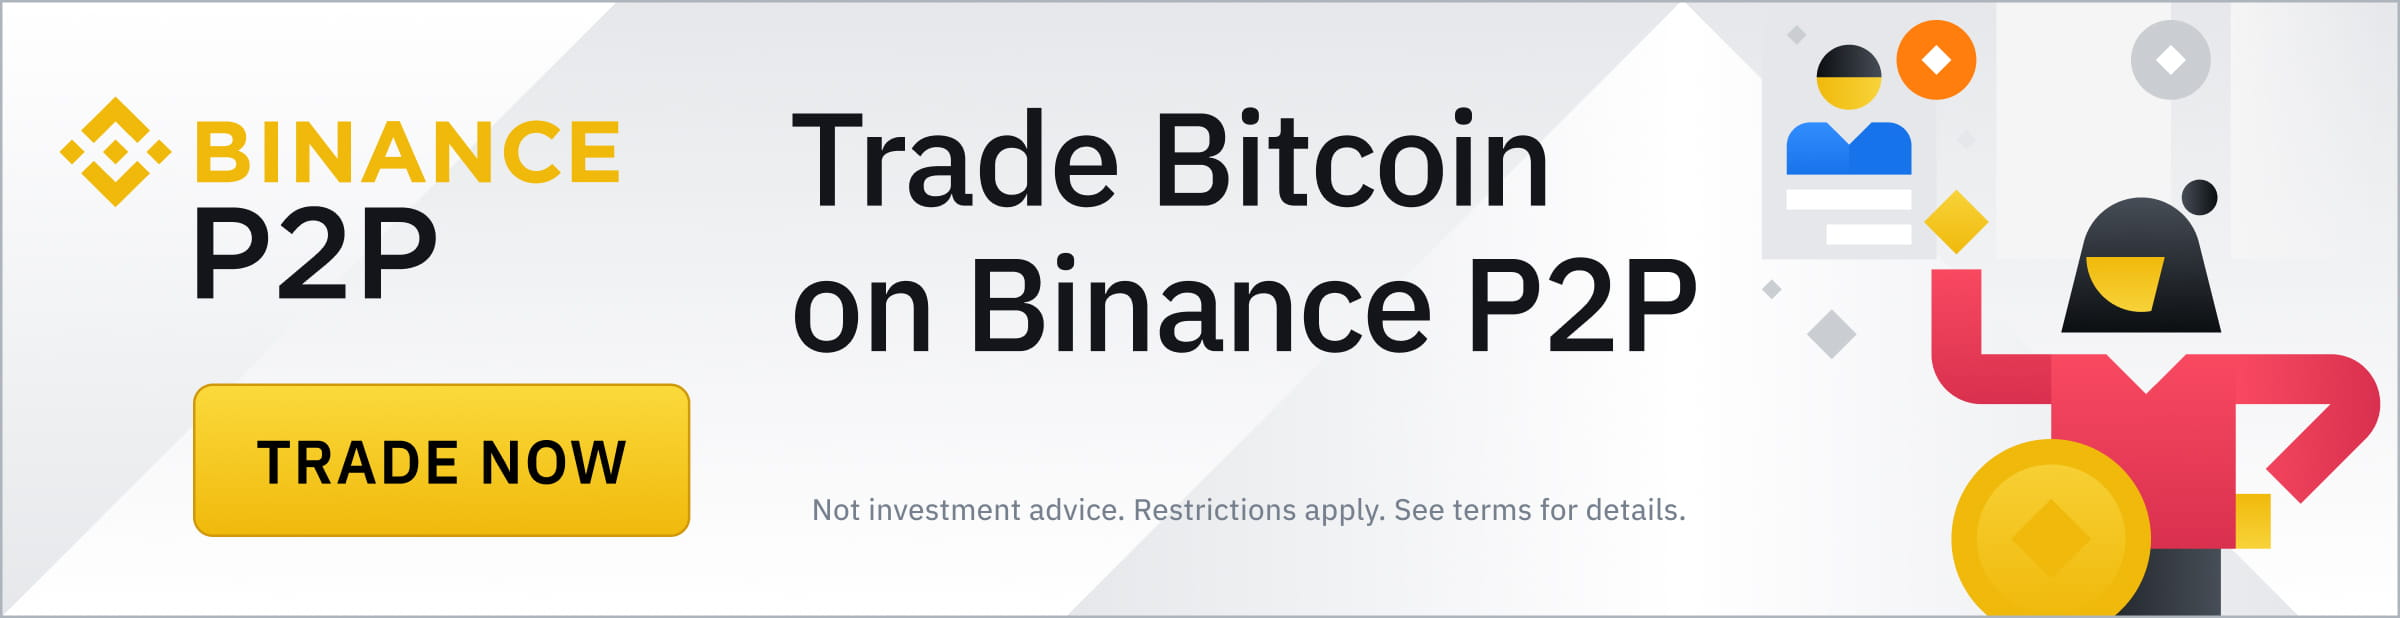 Tips for Using the Binance P2P Chat to Avoid Transaction ProblemsCryptocurrency Trading Signals, Strategies & Templates | DexStrats